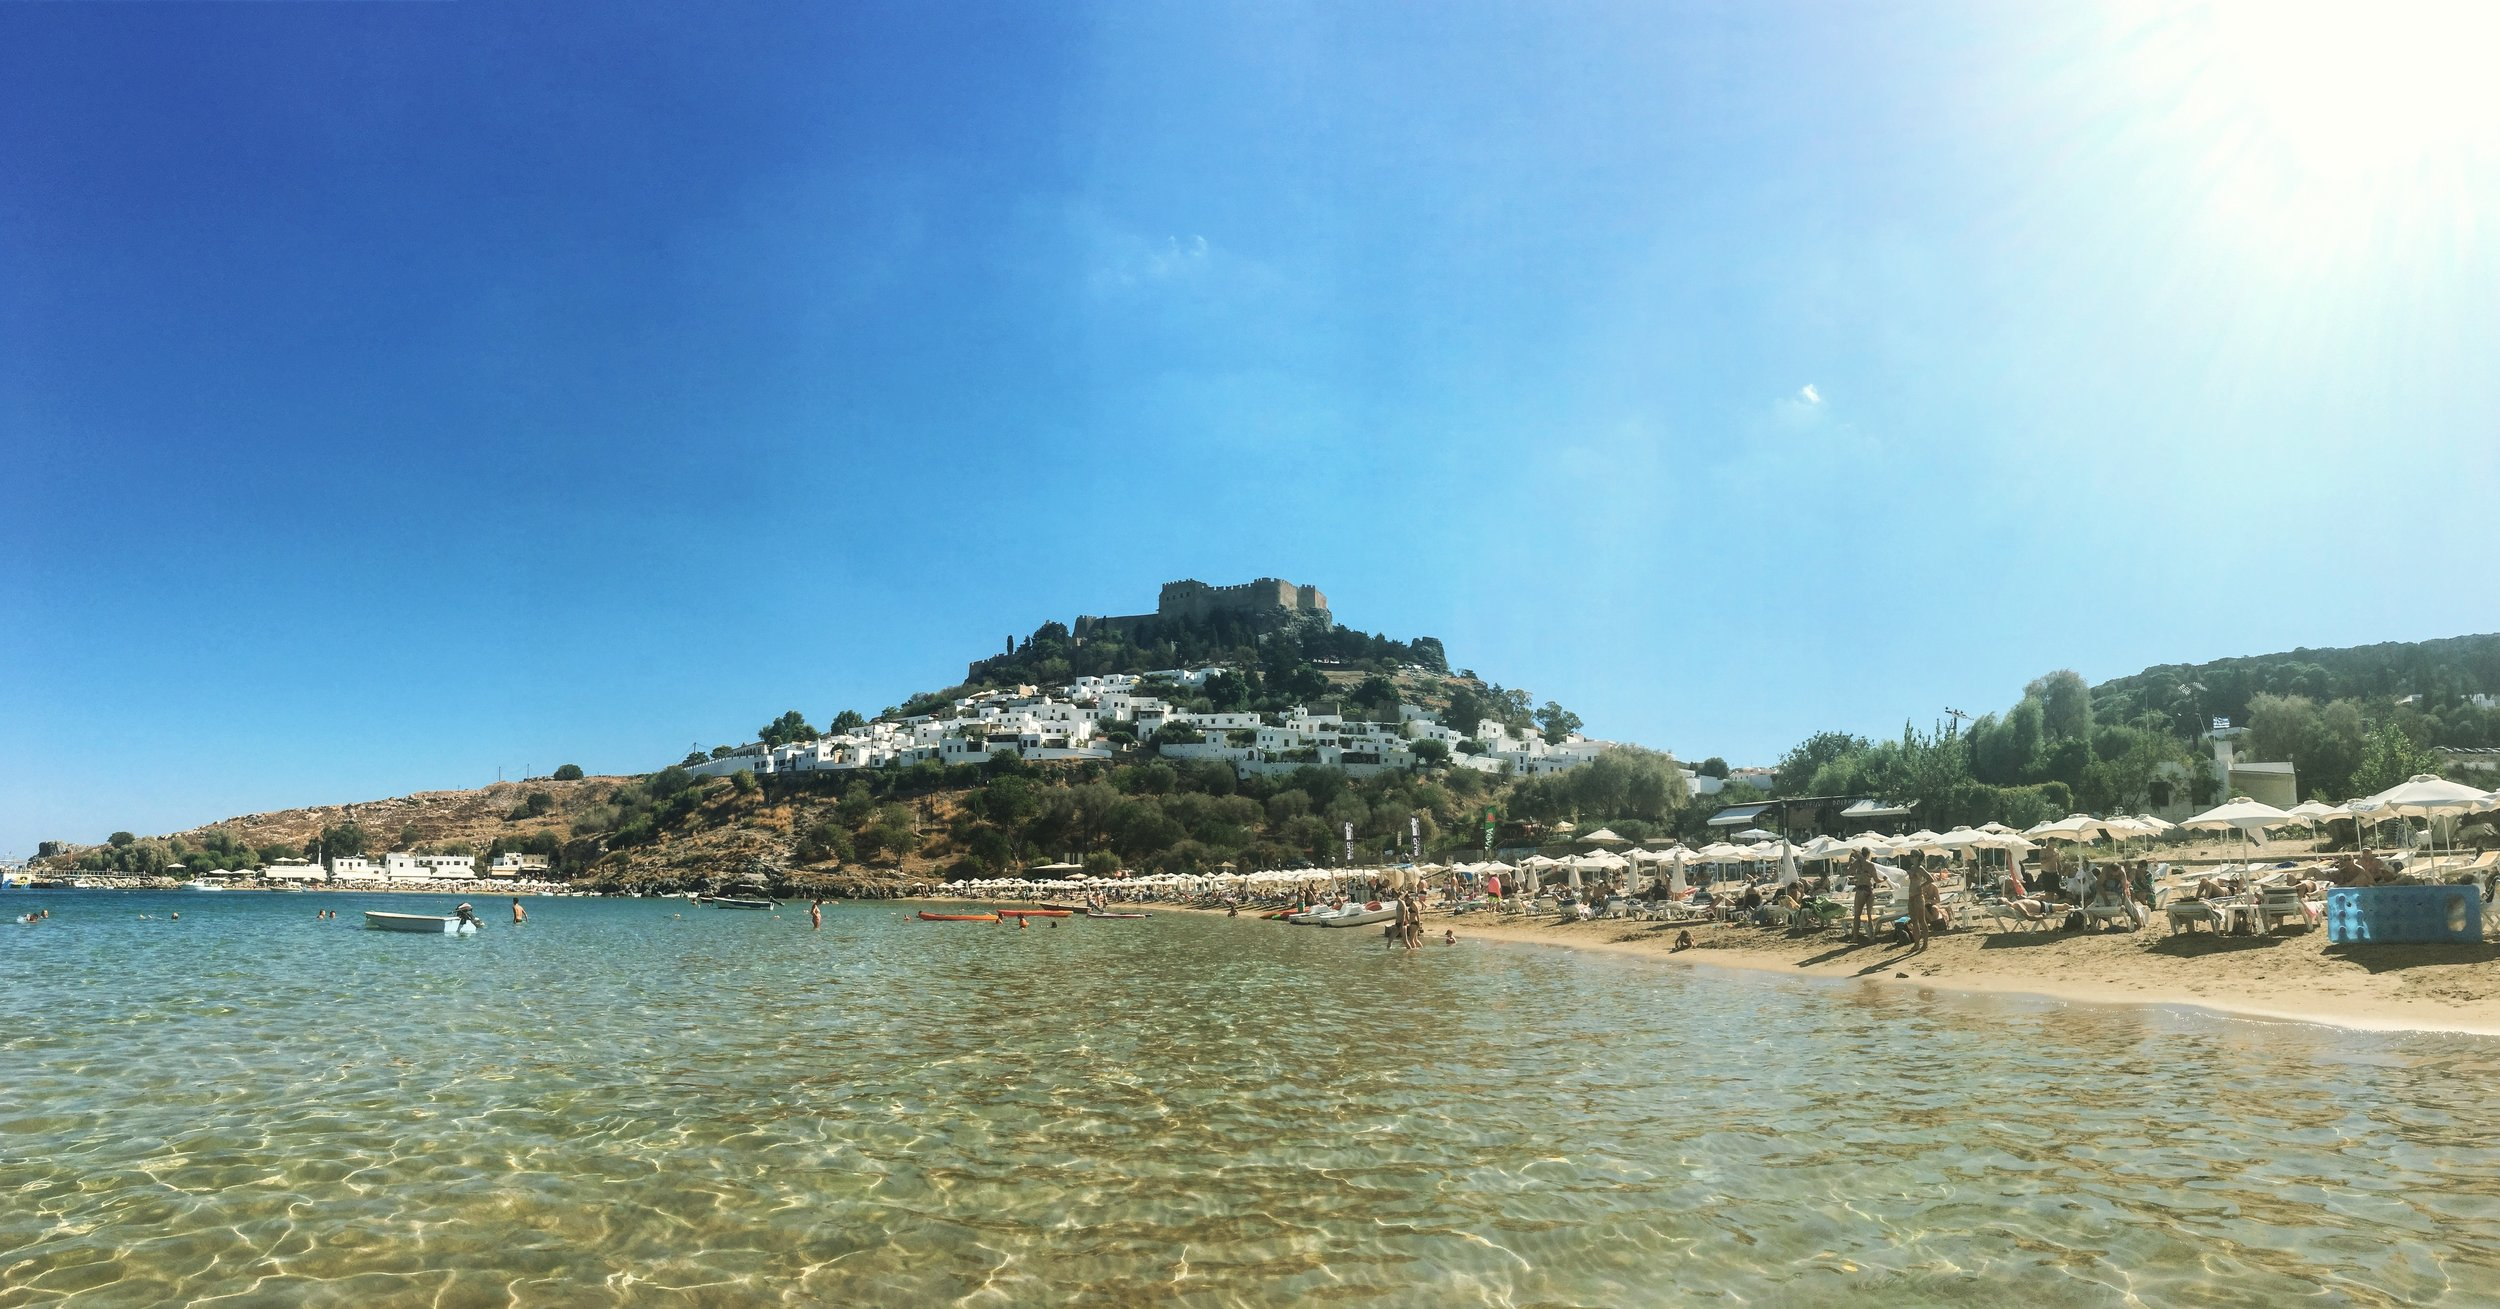 The beach in front of Lindos town and below the Acropolis